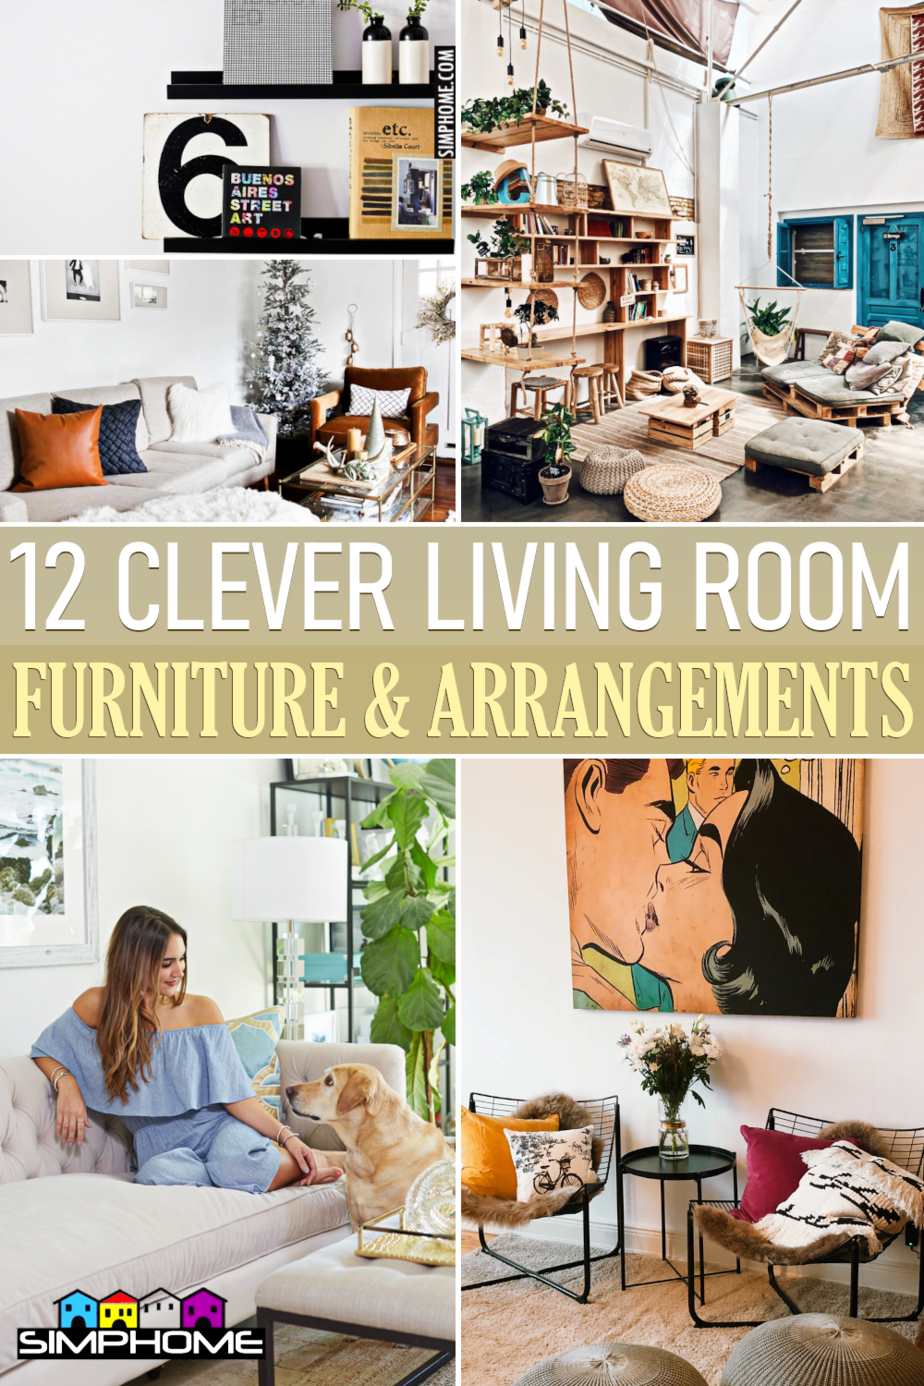 12 Clever Living Room Furniture Ideas and Arrangement via Simphome.comFeatured